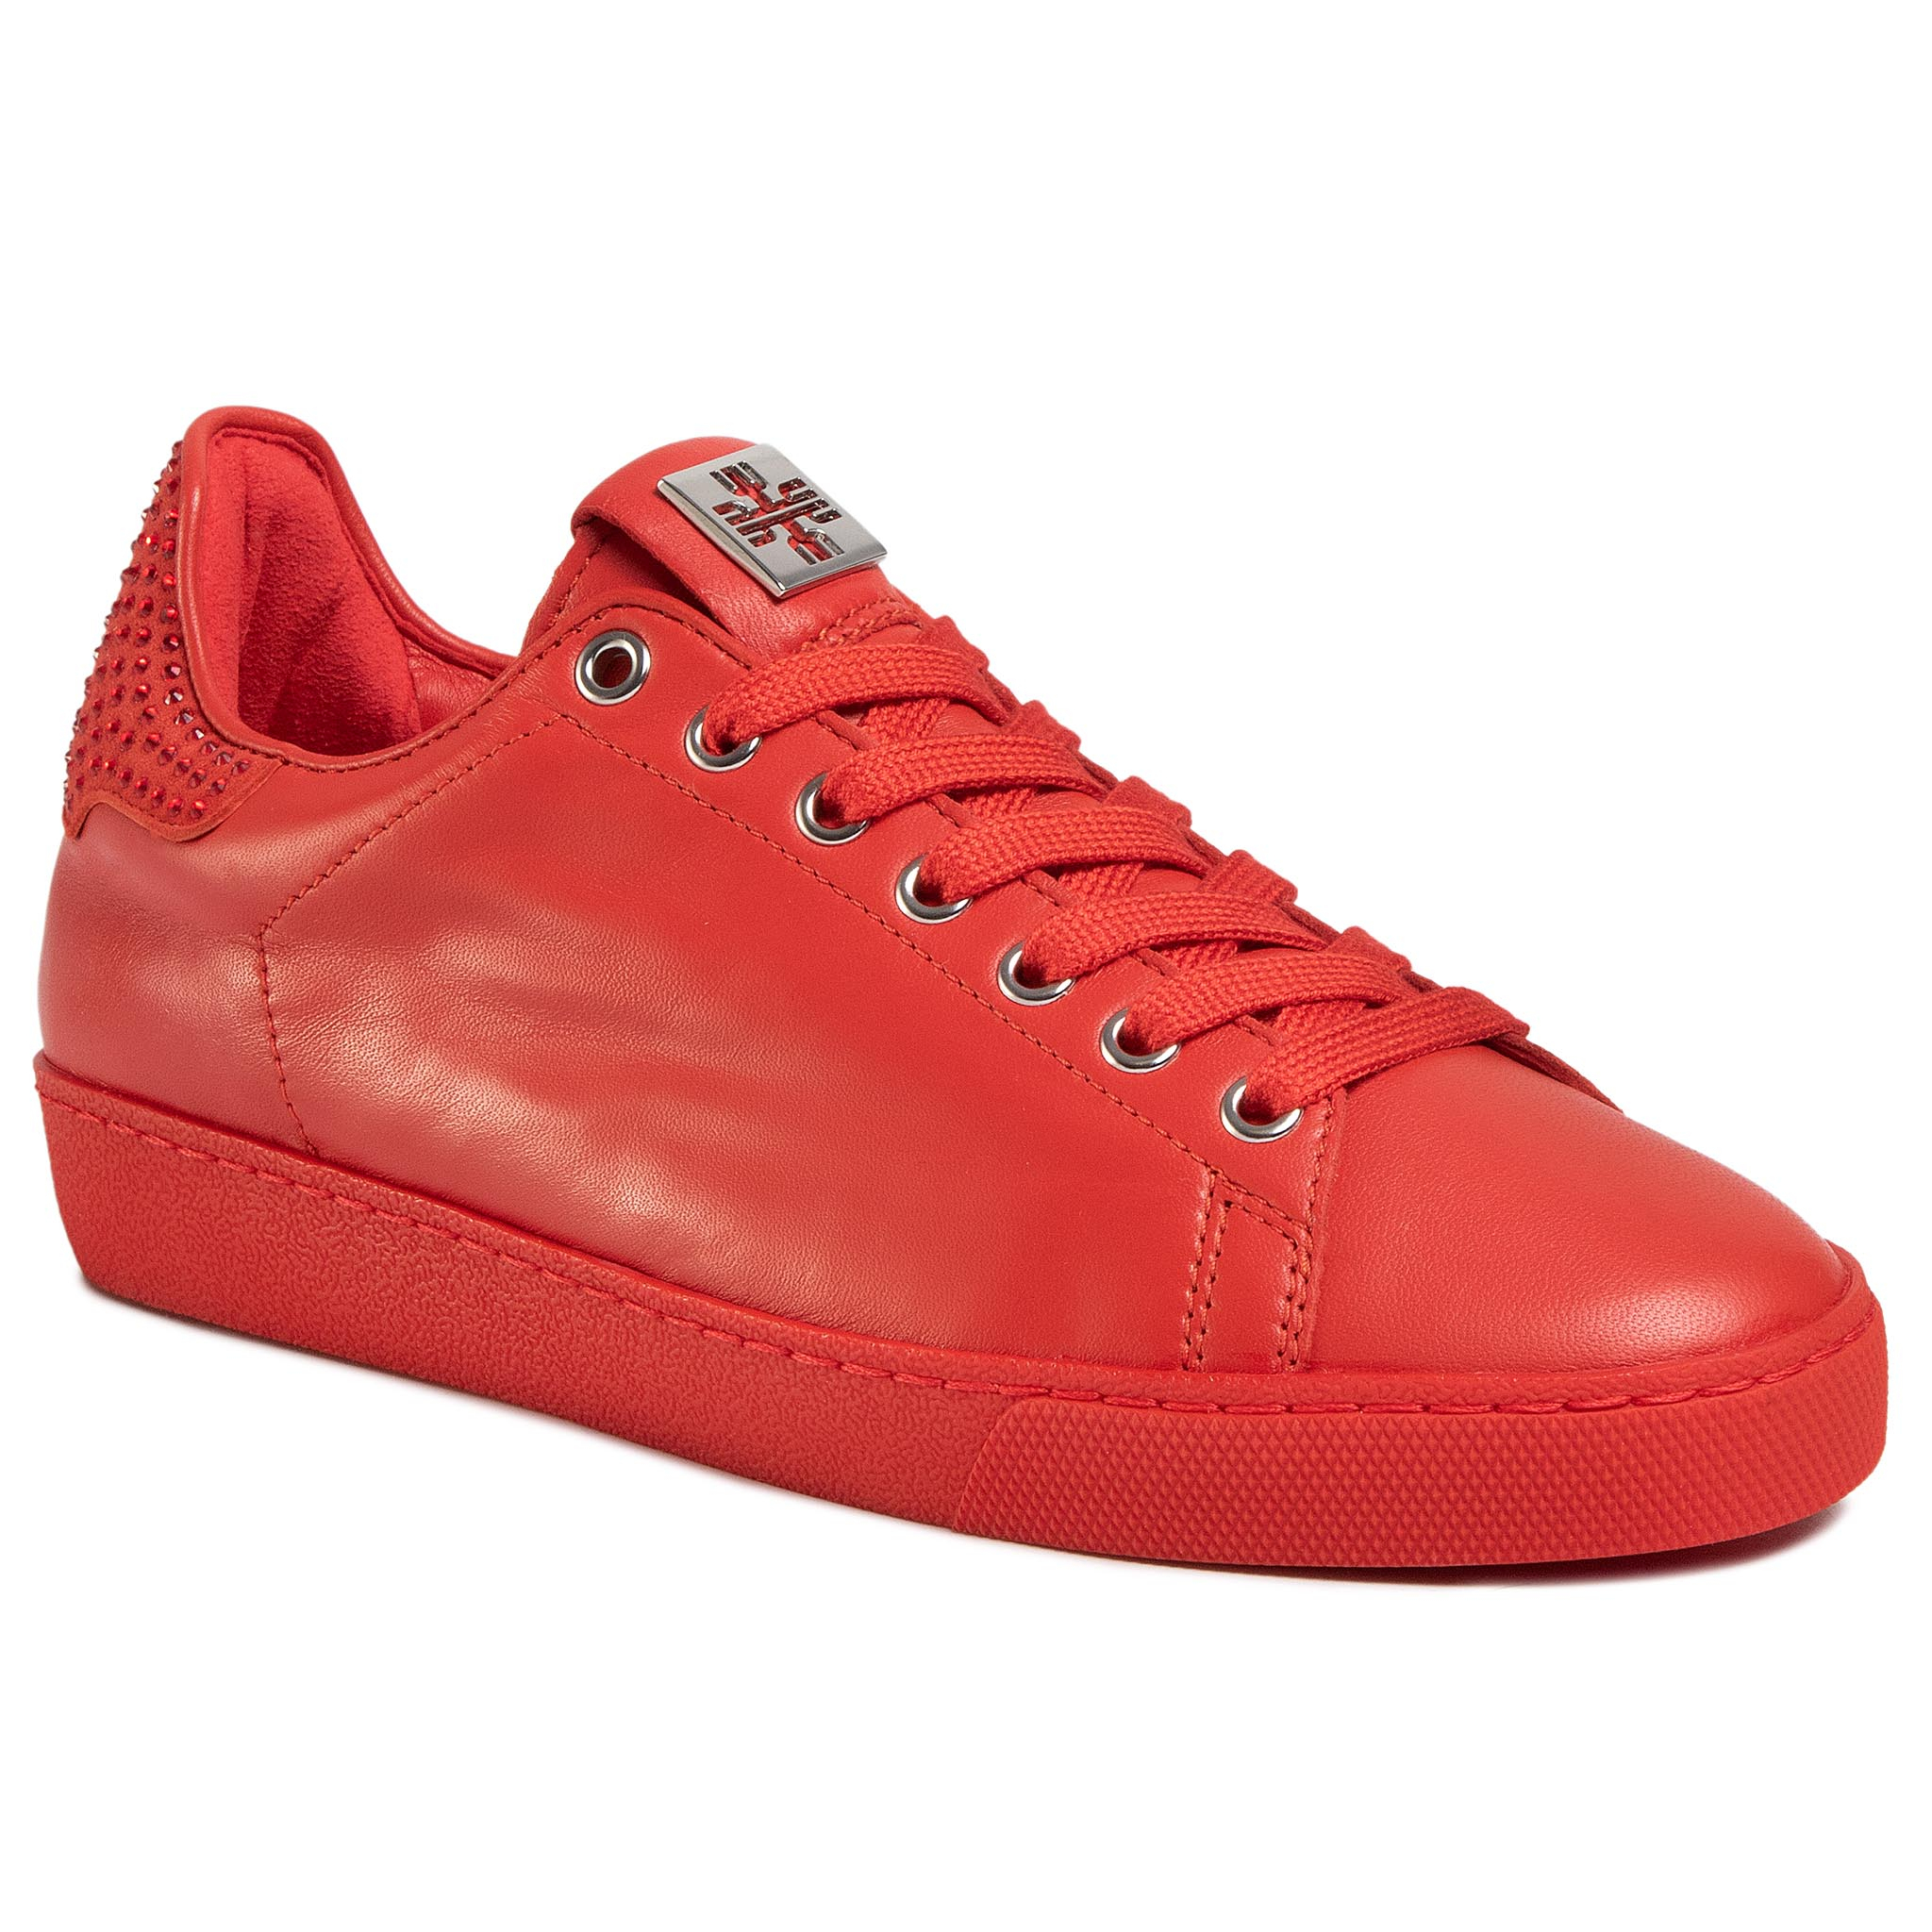 Sneakers HÖGL - 9-100350 Red 4000